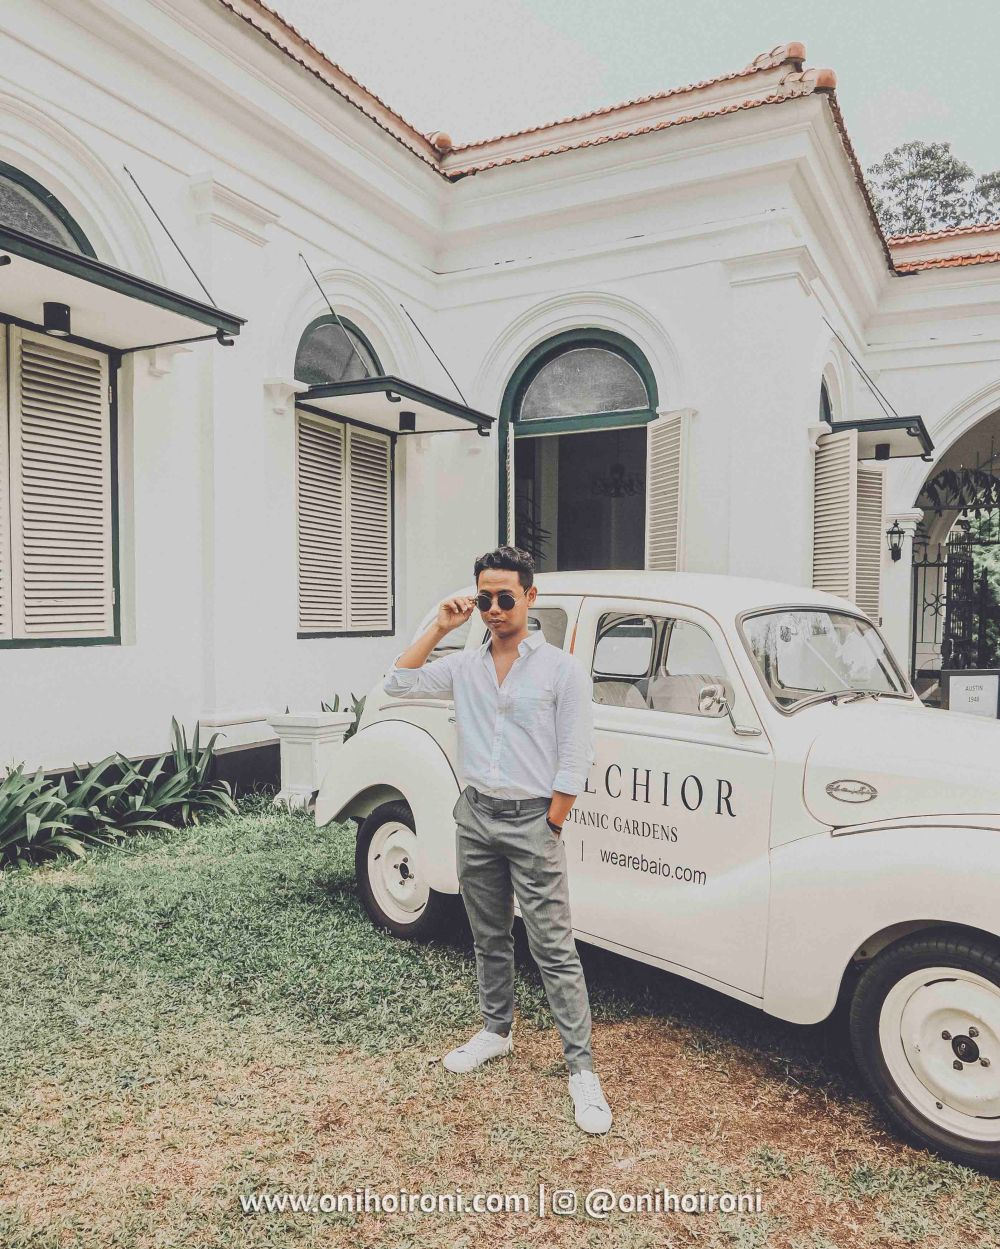 6 review The melchior hotel bogor oni hoironi